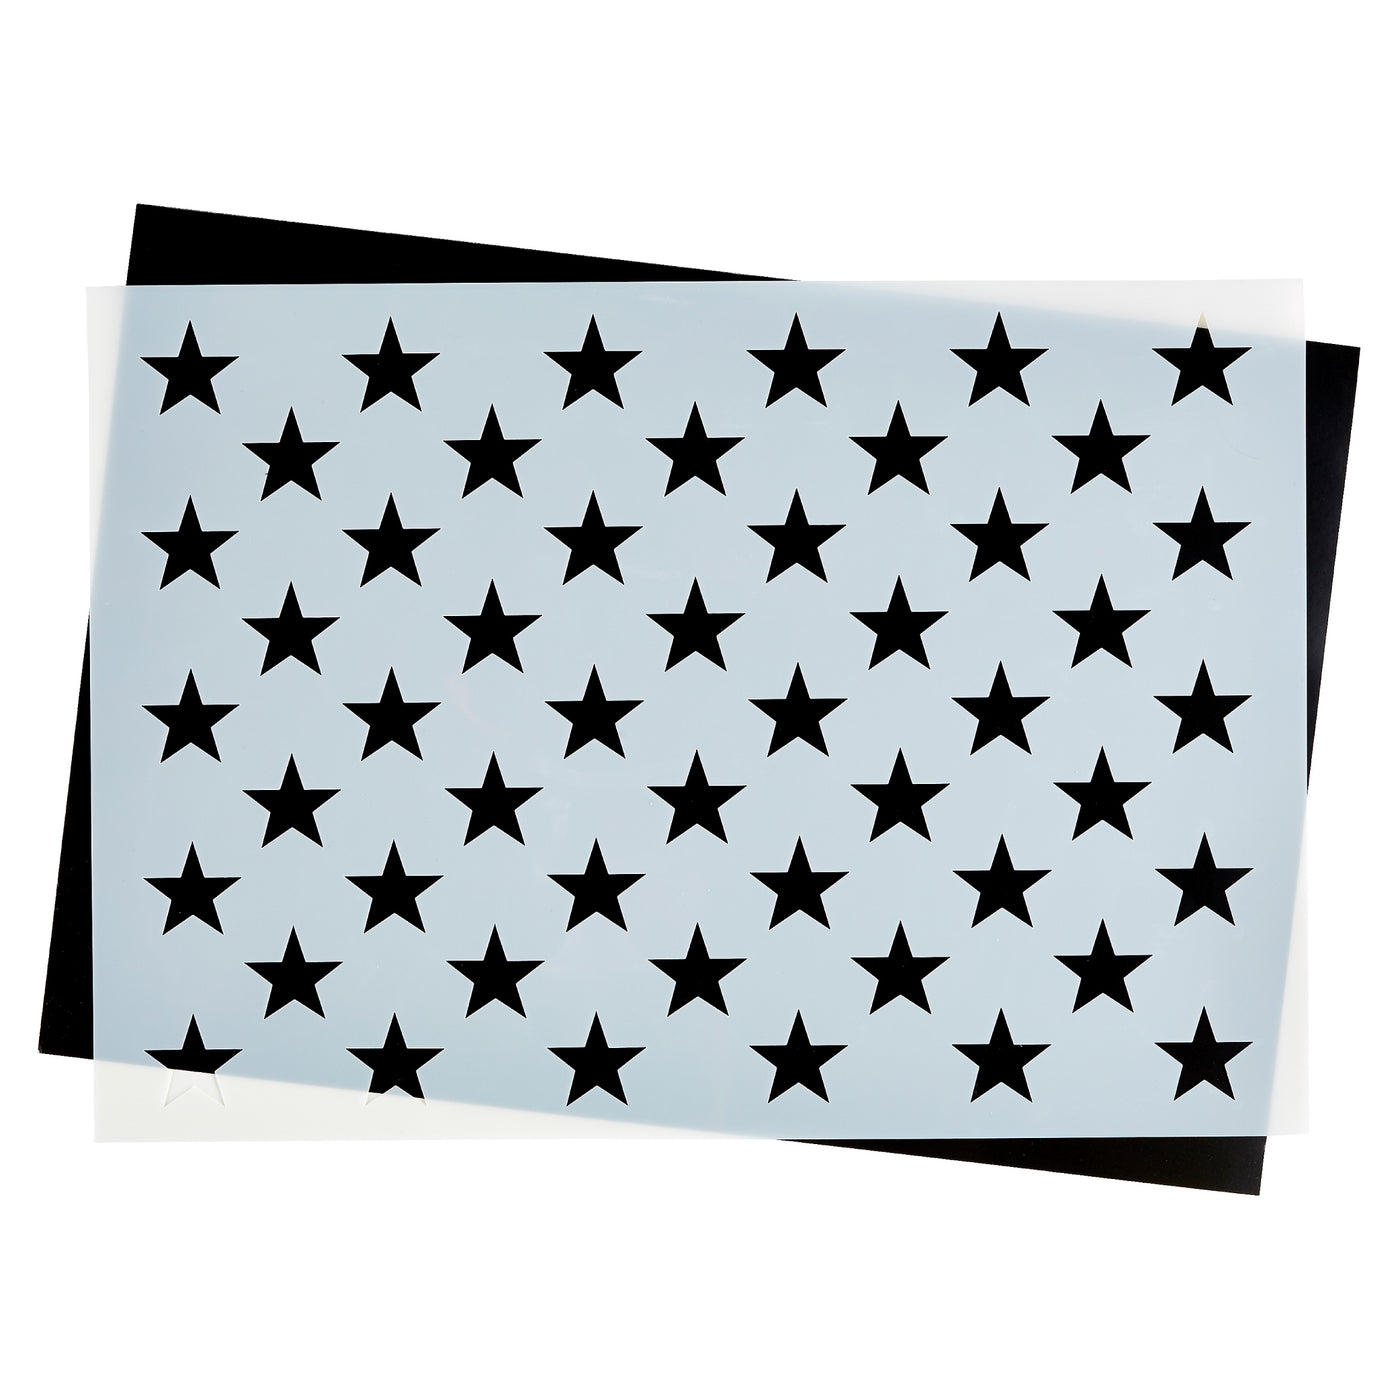 image about 50 Star Stencil Printable titled Star Business Templates for Craftsmen of AMERICAN Wooden Flags